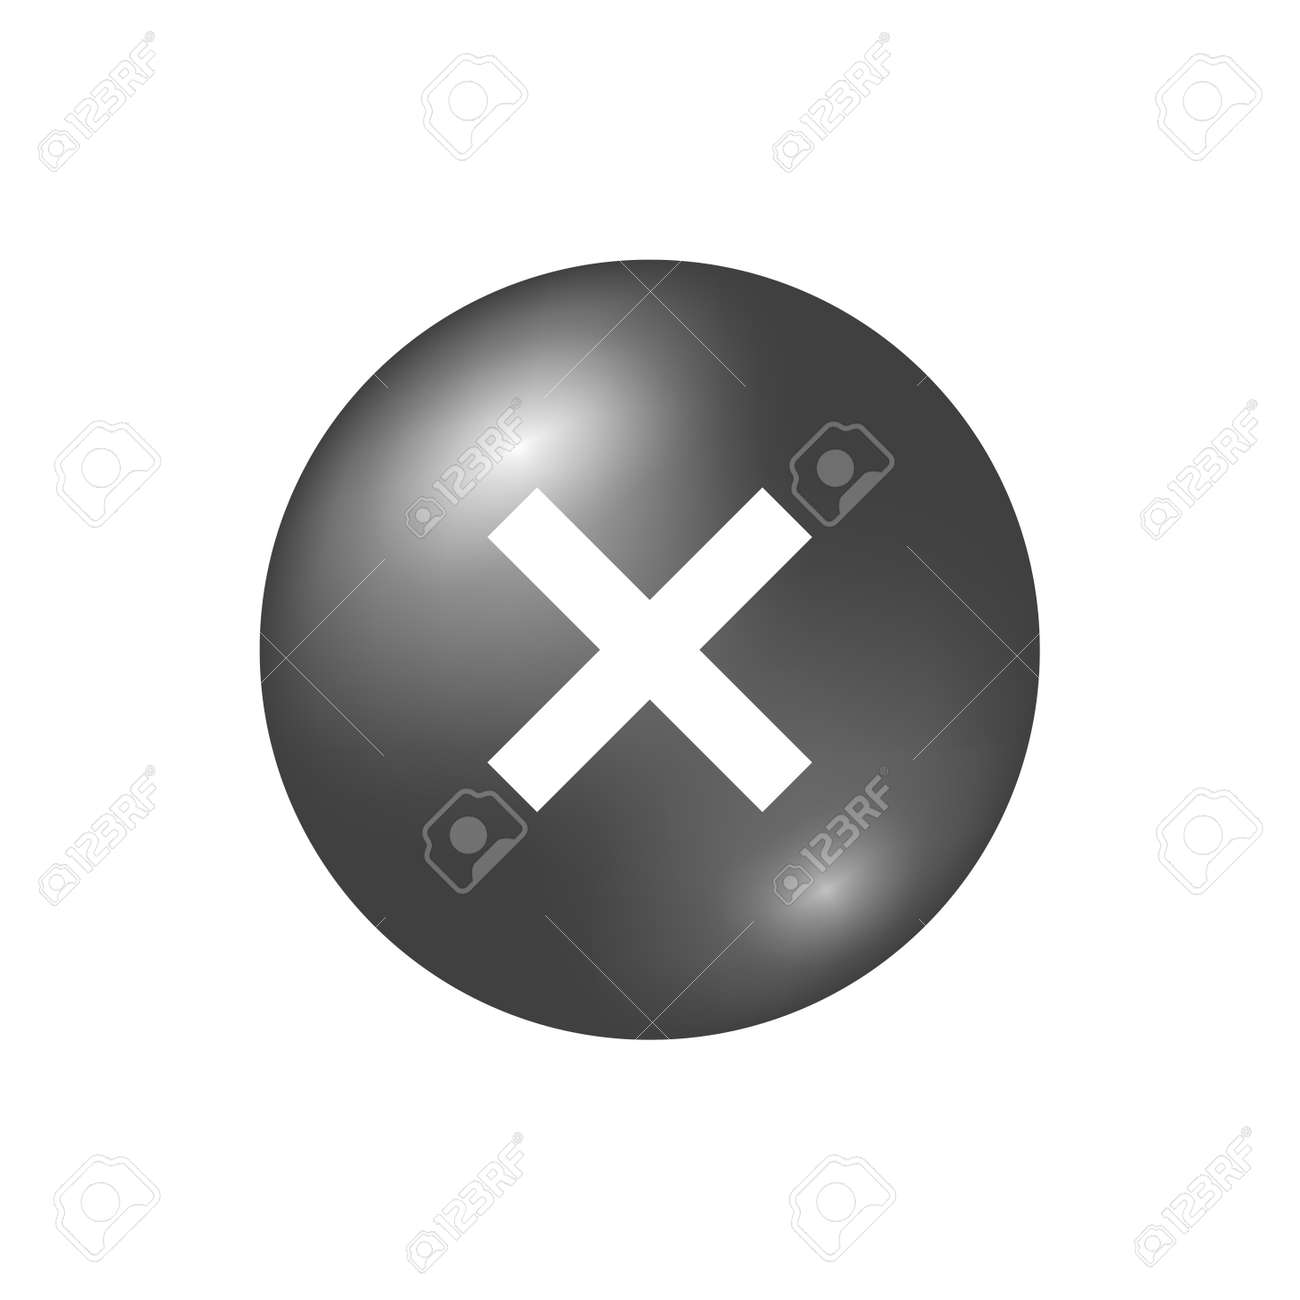 Cross sign gray element silver x icon isolated on white cross sign gray element silver x icon isolated on white background mark graphic design buycottarizona